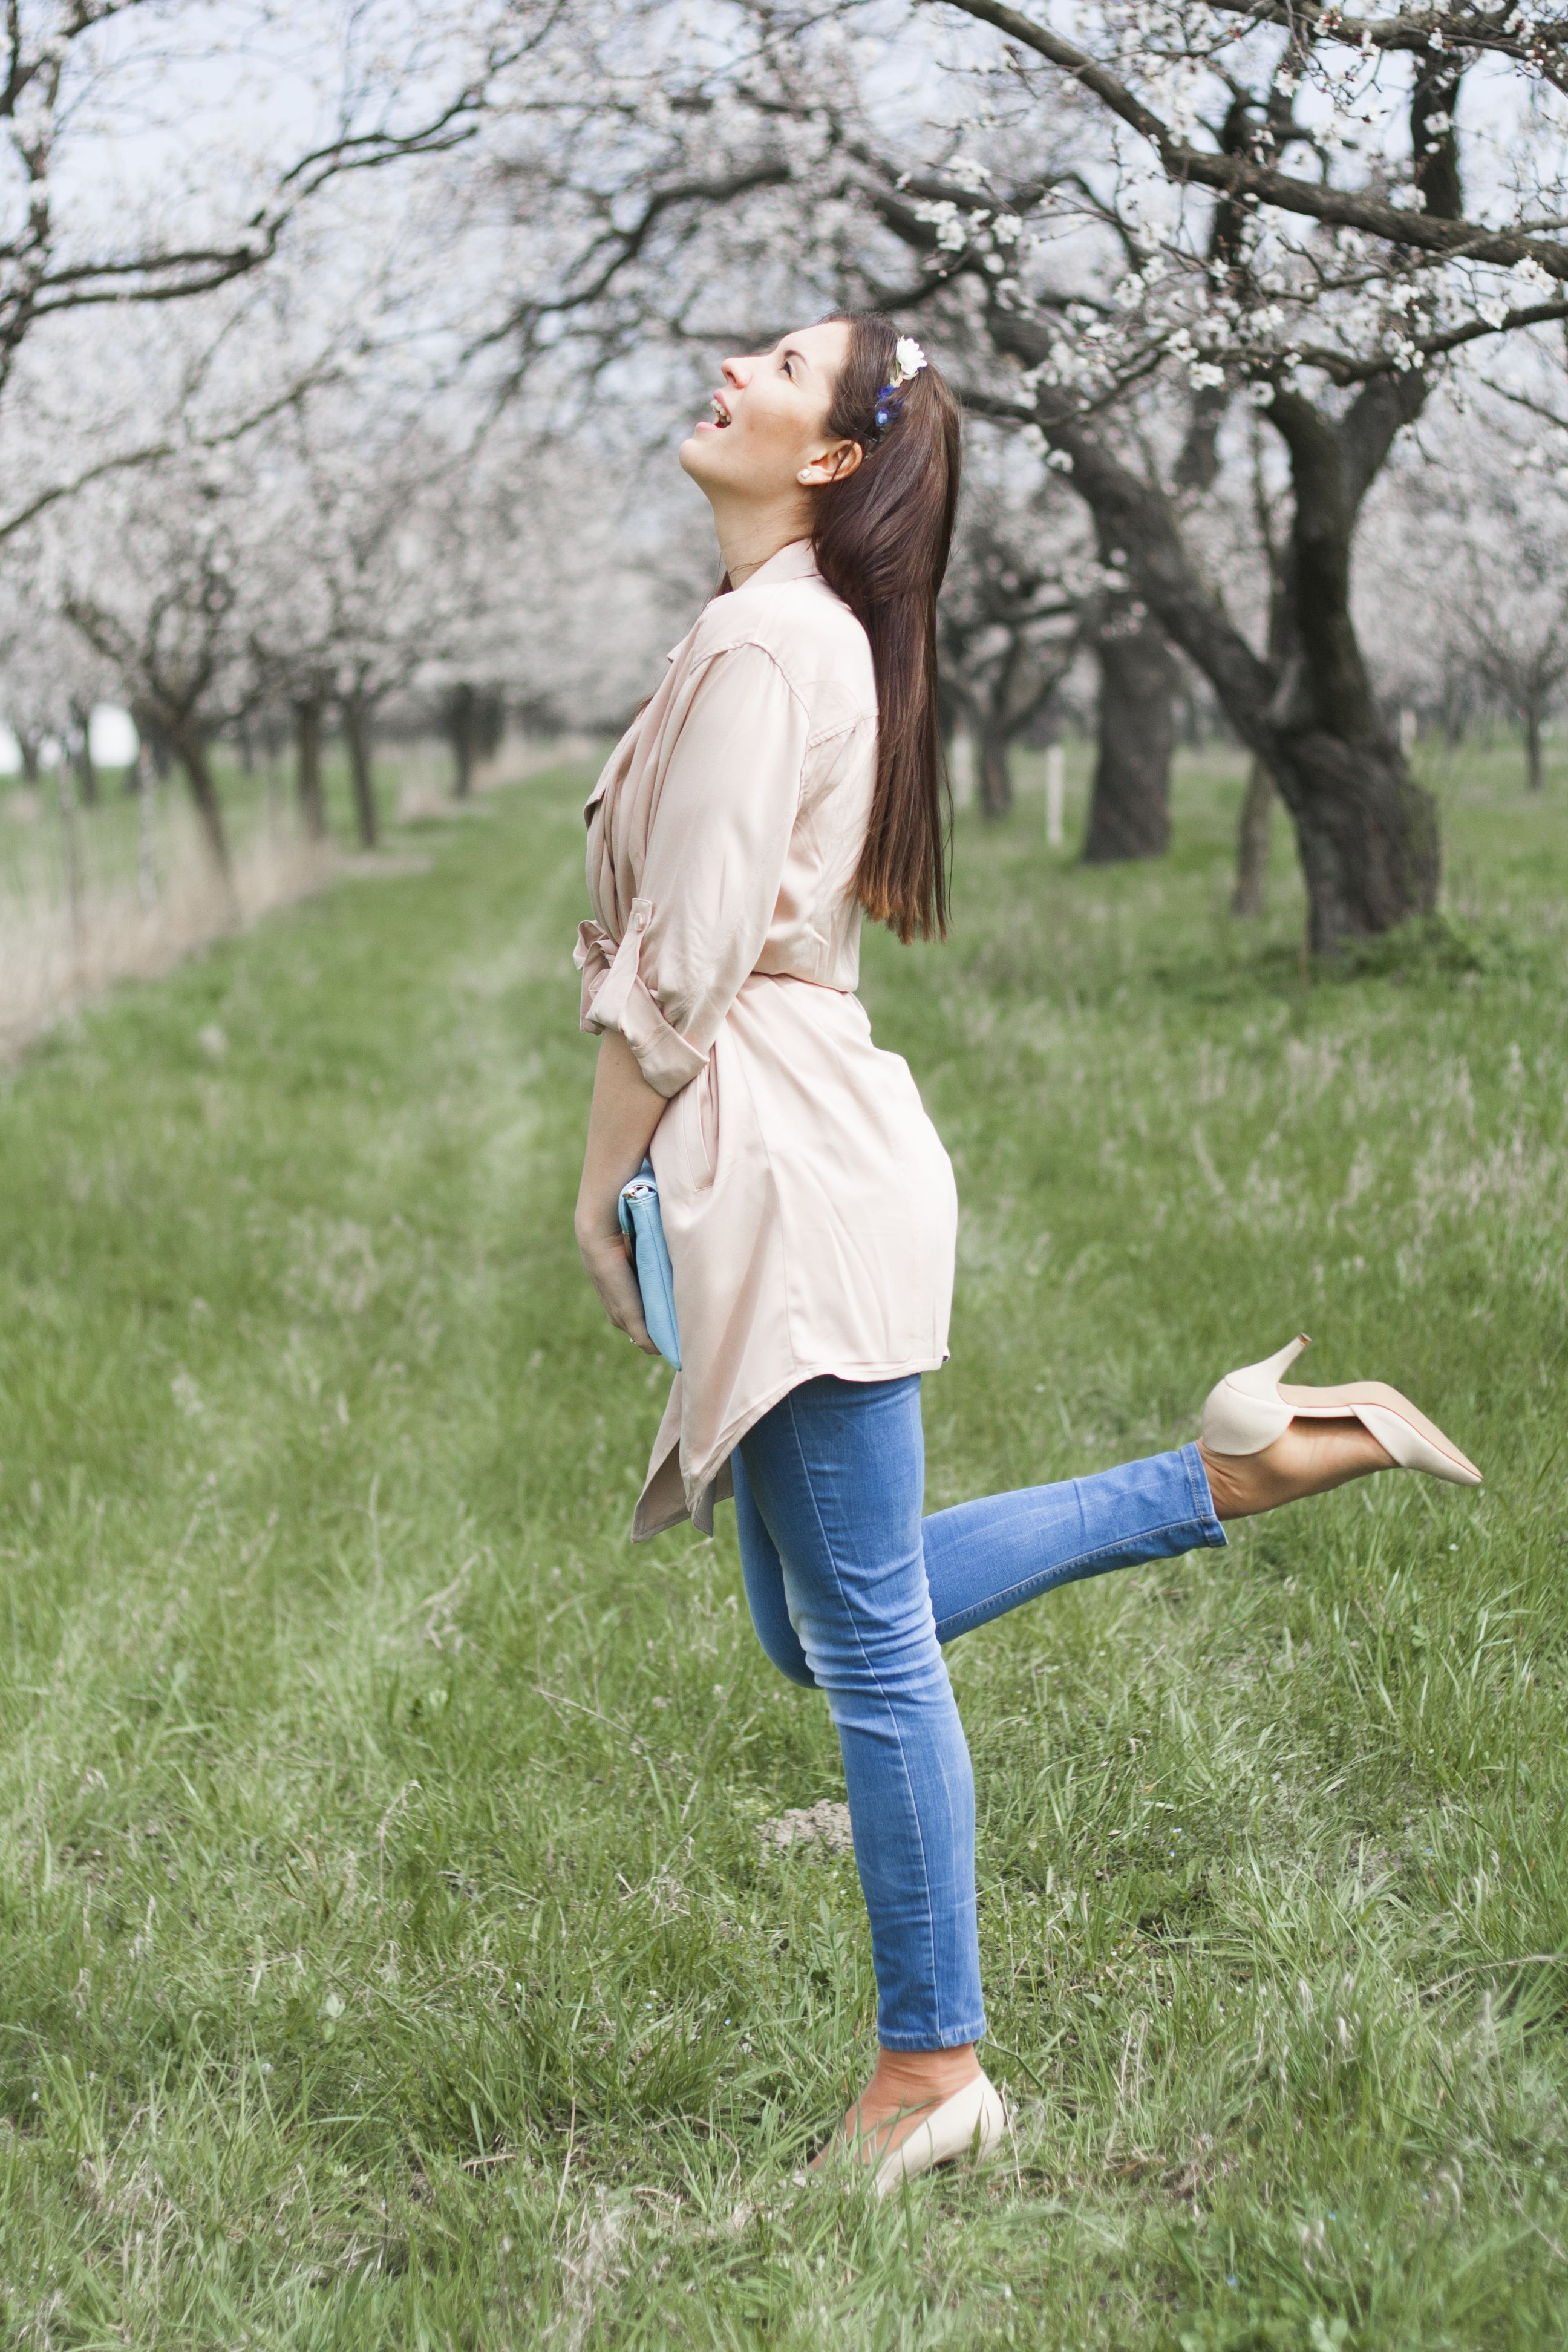 #springoutfit #trenchcoat #pinktrenchcoat #ootd #slovakblogger #fashionblogger #cuteoutfit #comfylook #look #fashion #dnesnosim